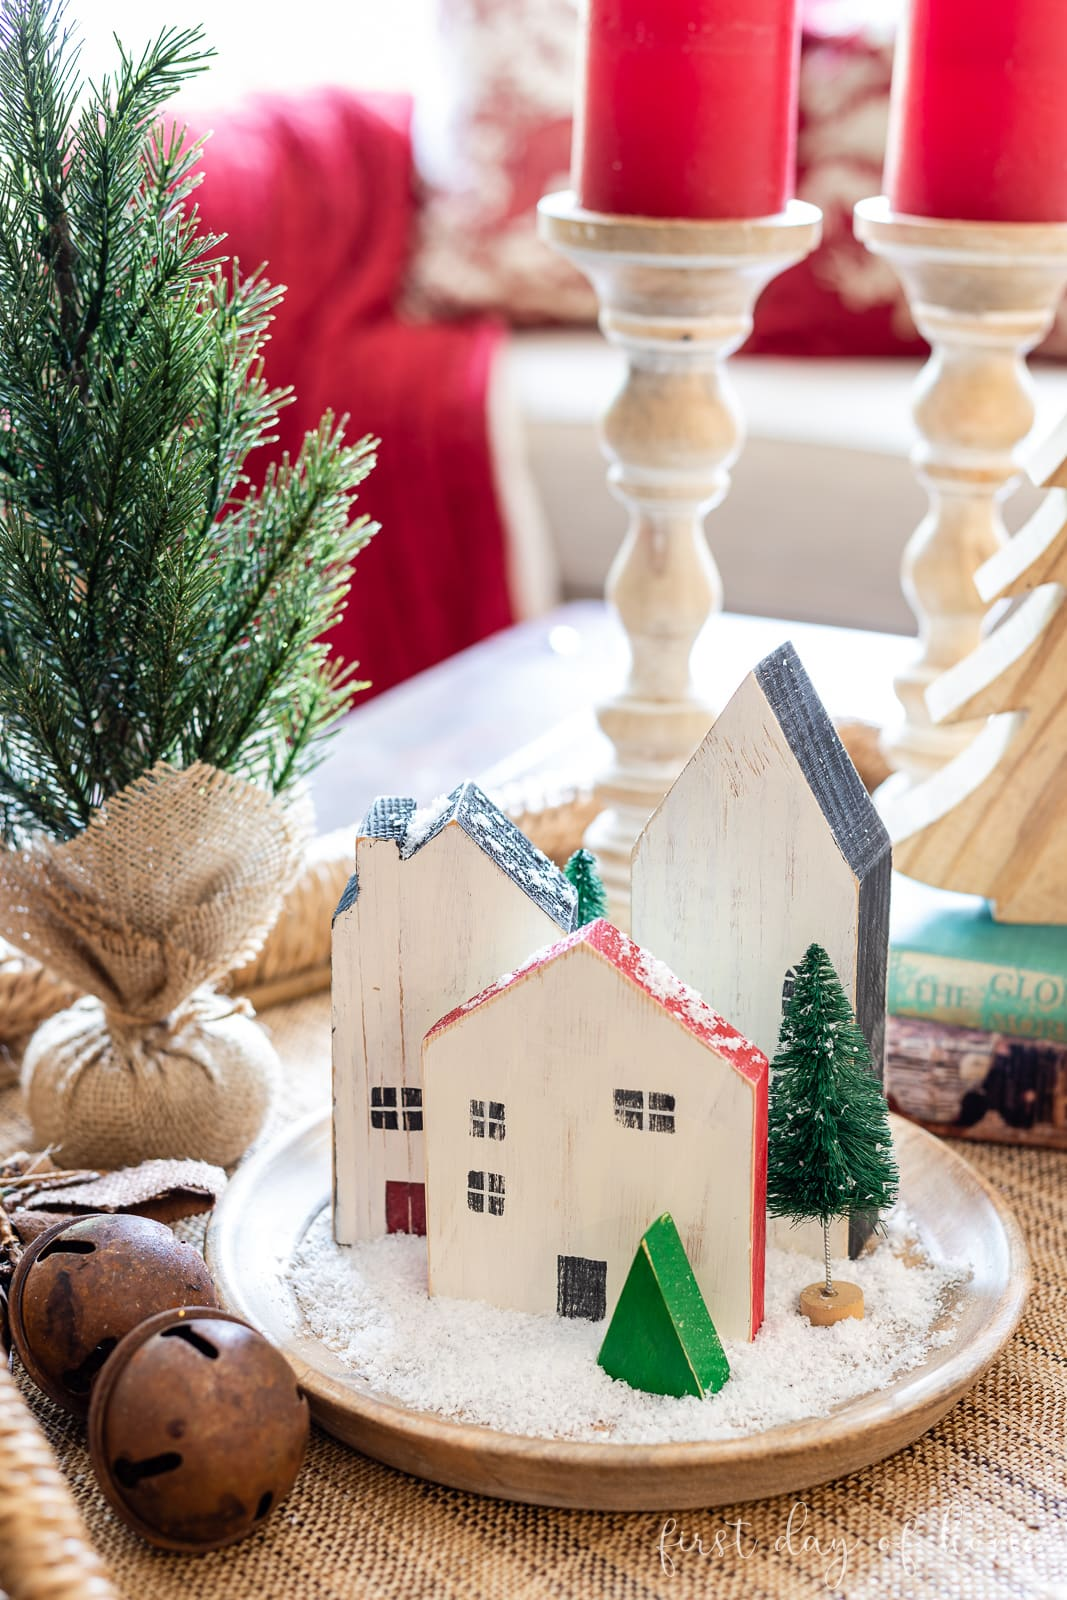 Three wooden craft houses sitting on coffee table tray with fake snow and bottle brush Christmas trees